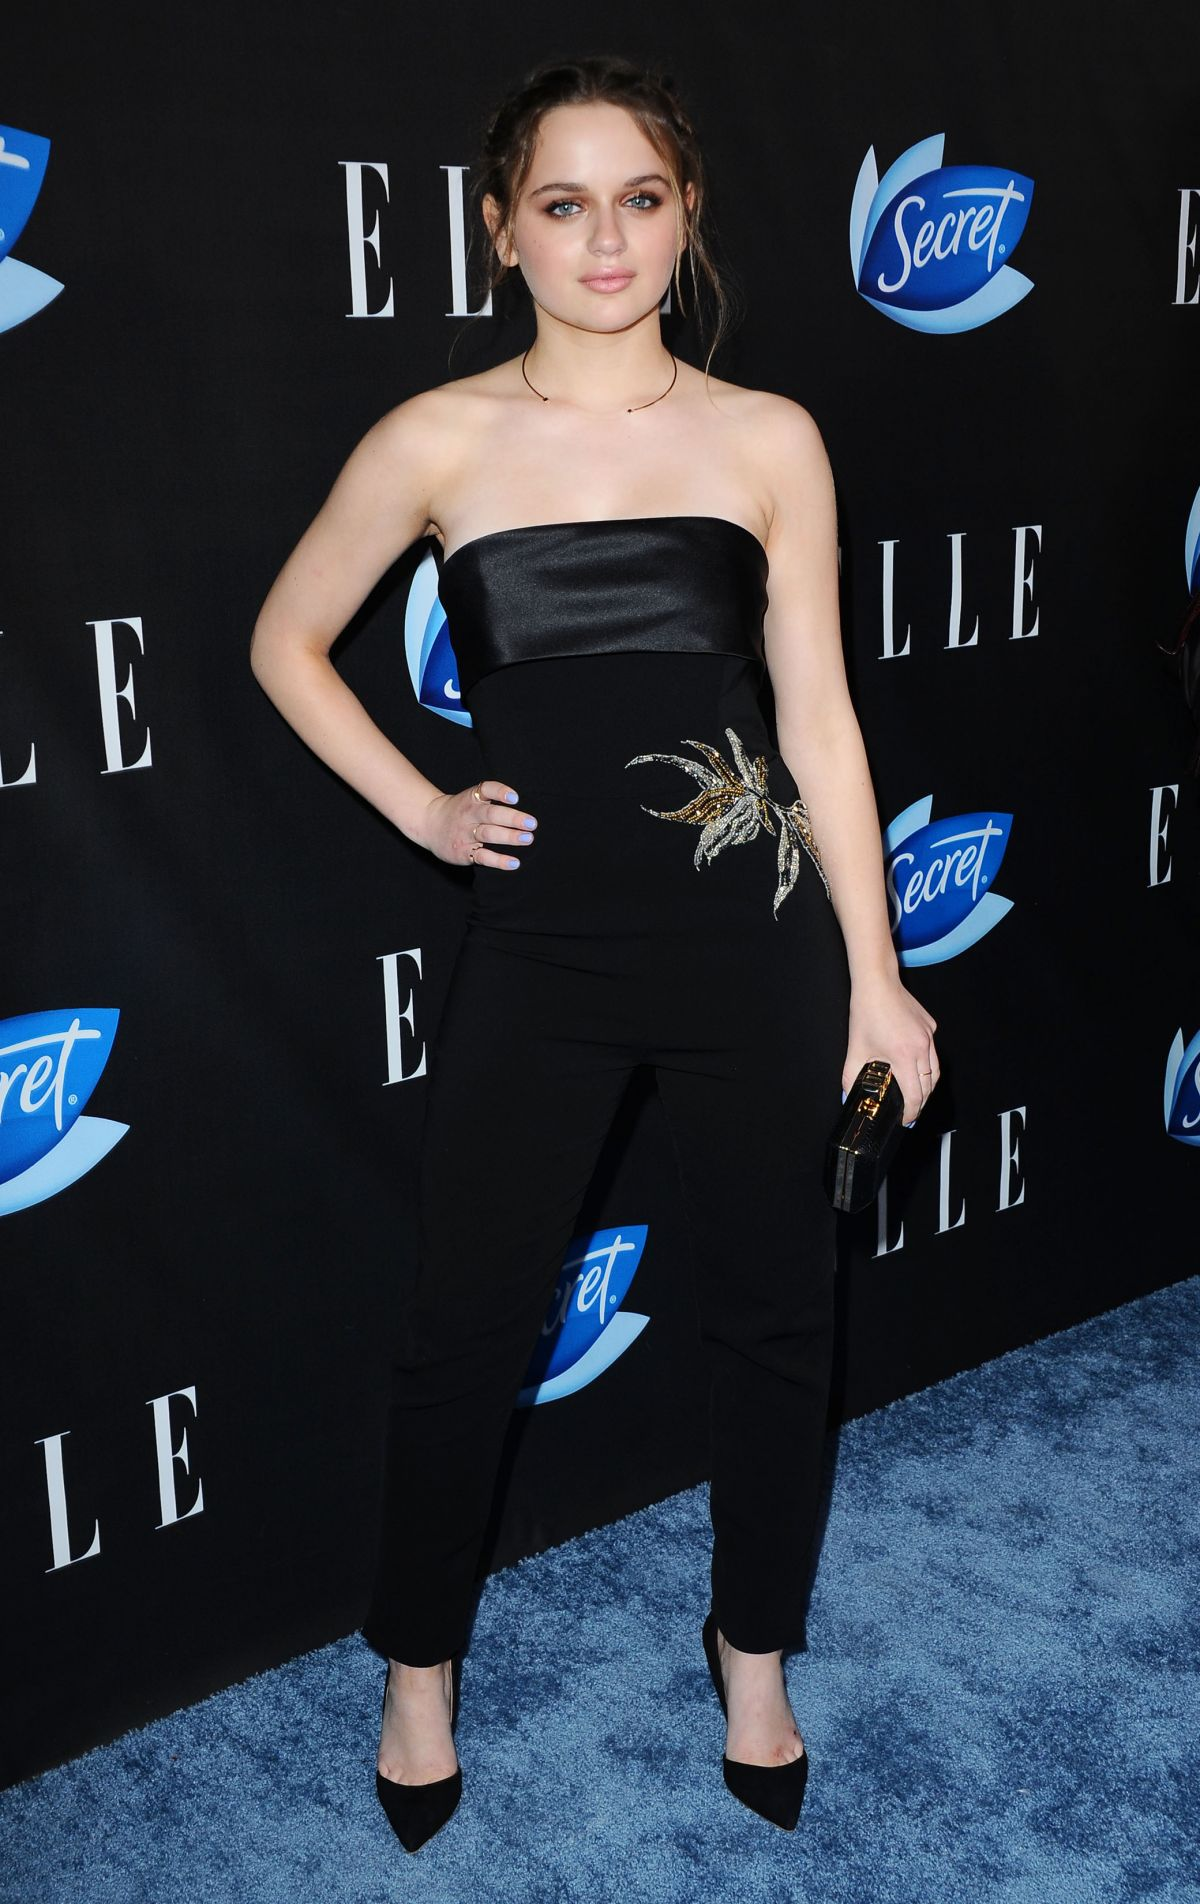 JOEY KING at Elle Hosts Women in Comedy Event in West Hollywood 06/07/2016